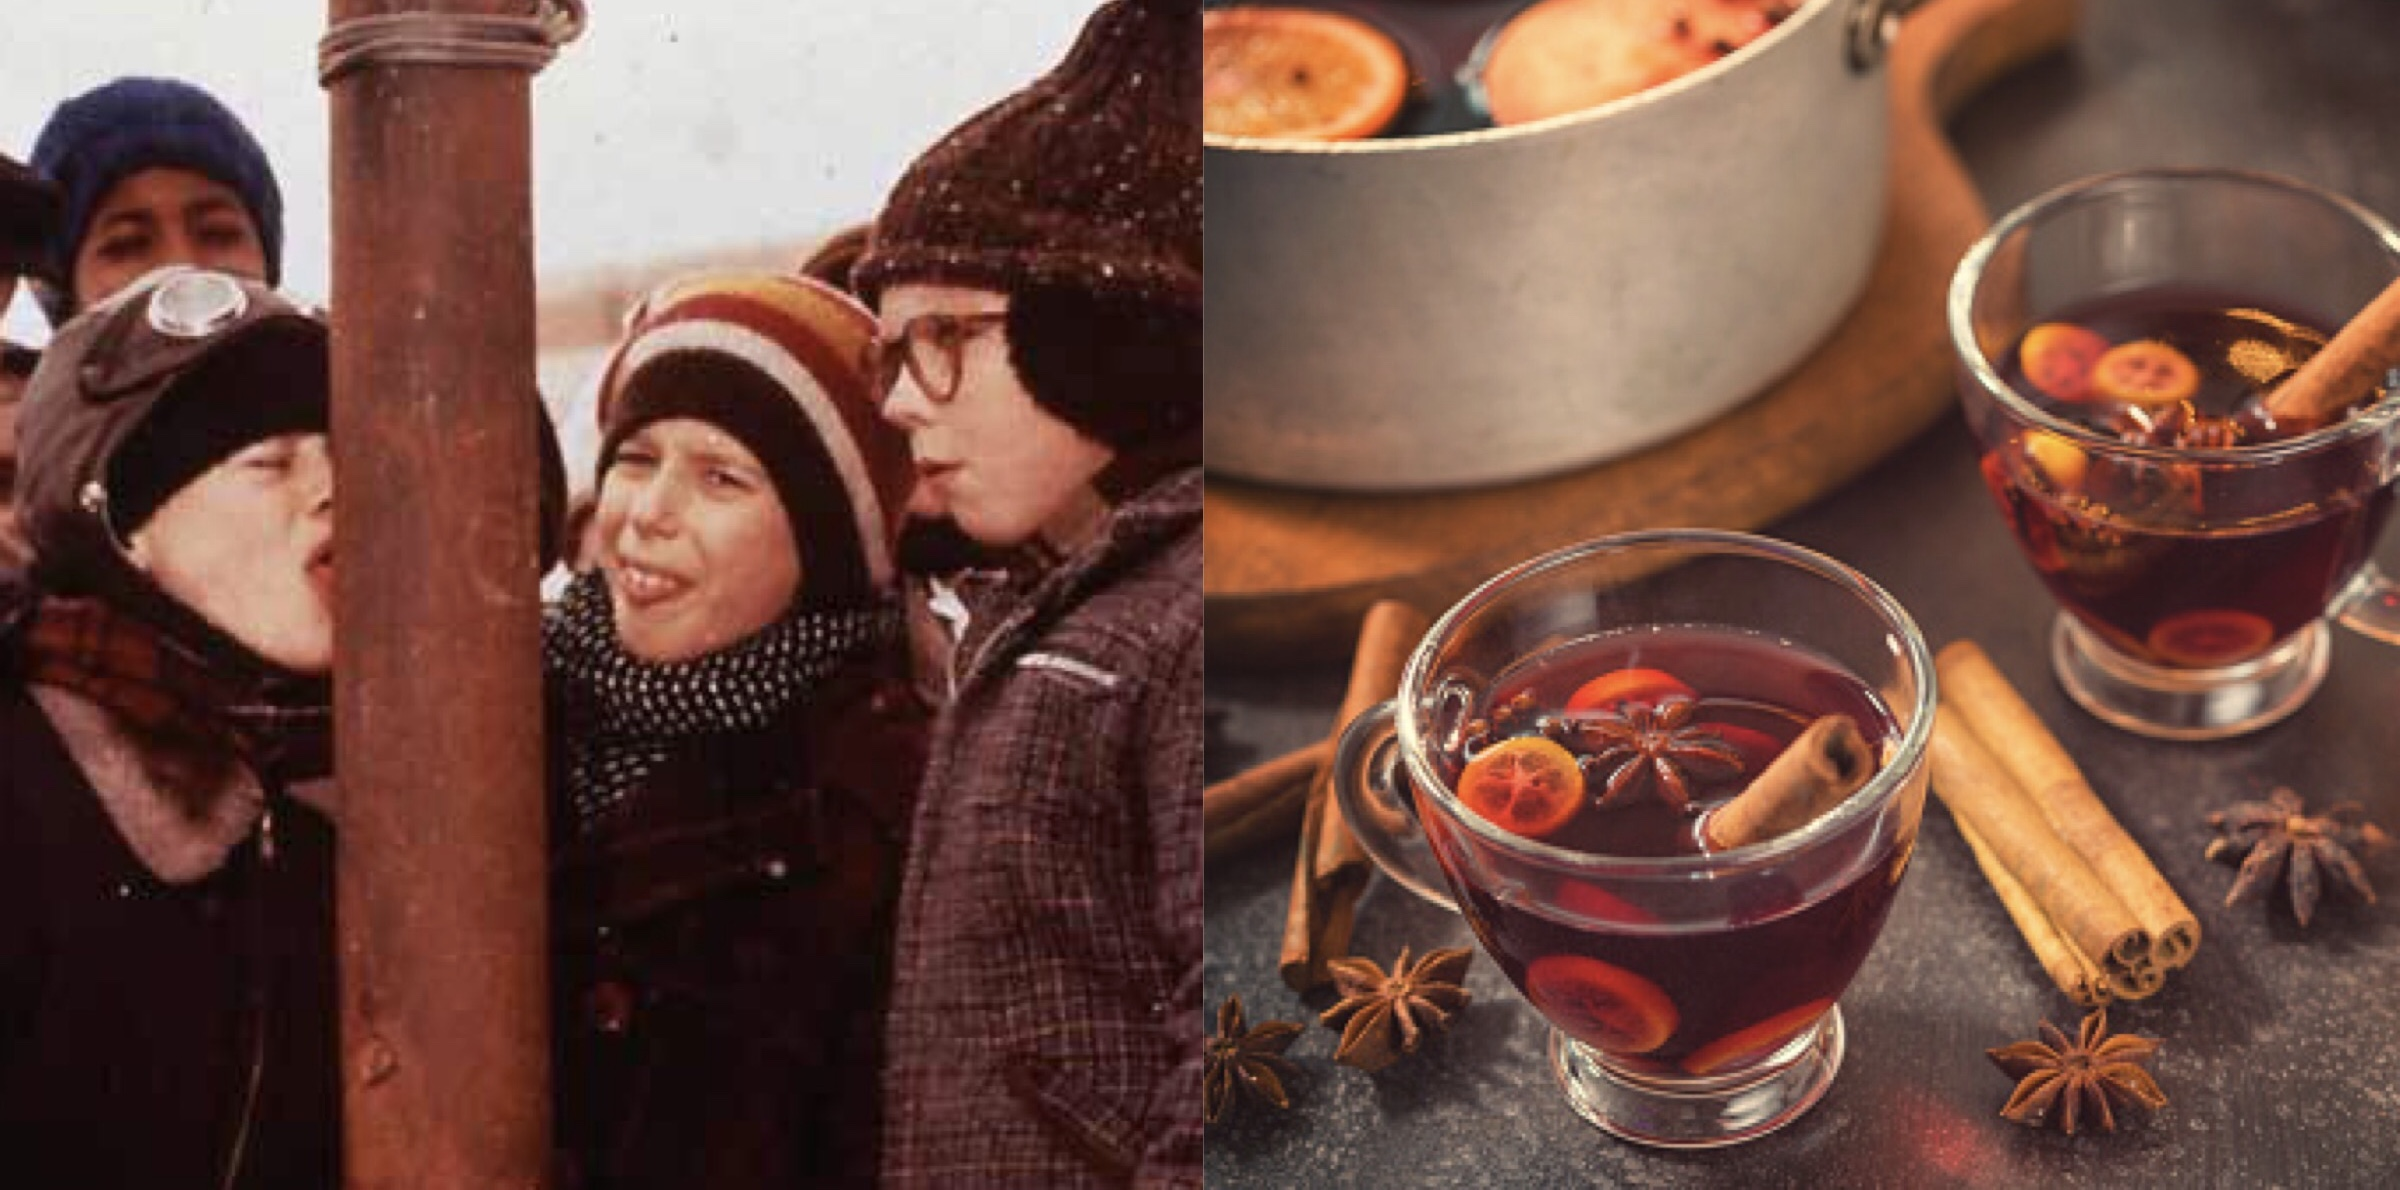 'A Christmas Story' and Gaelic Punch